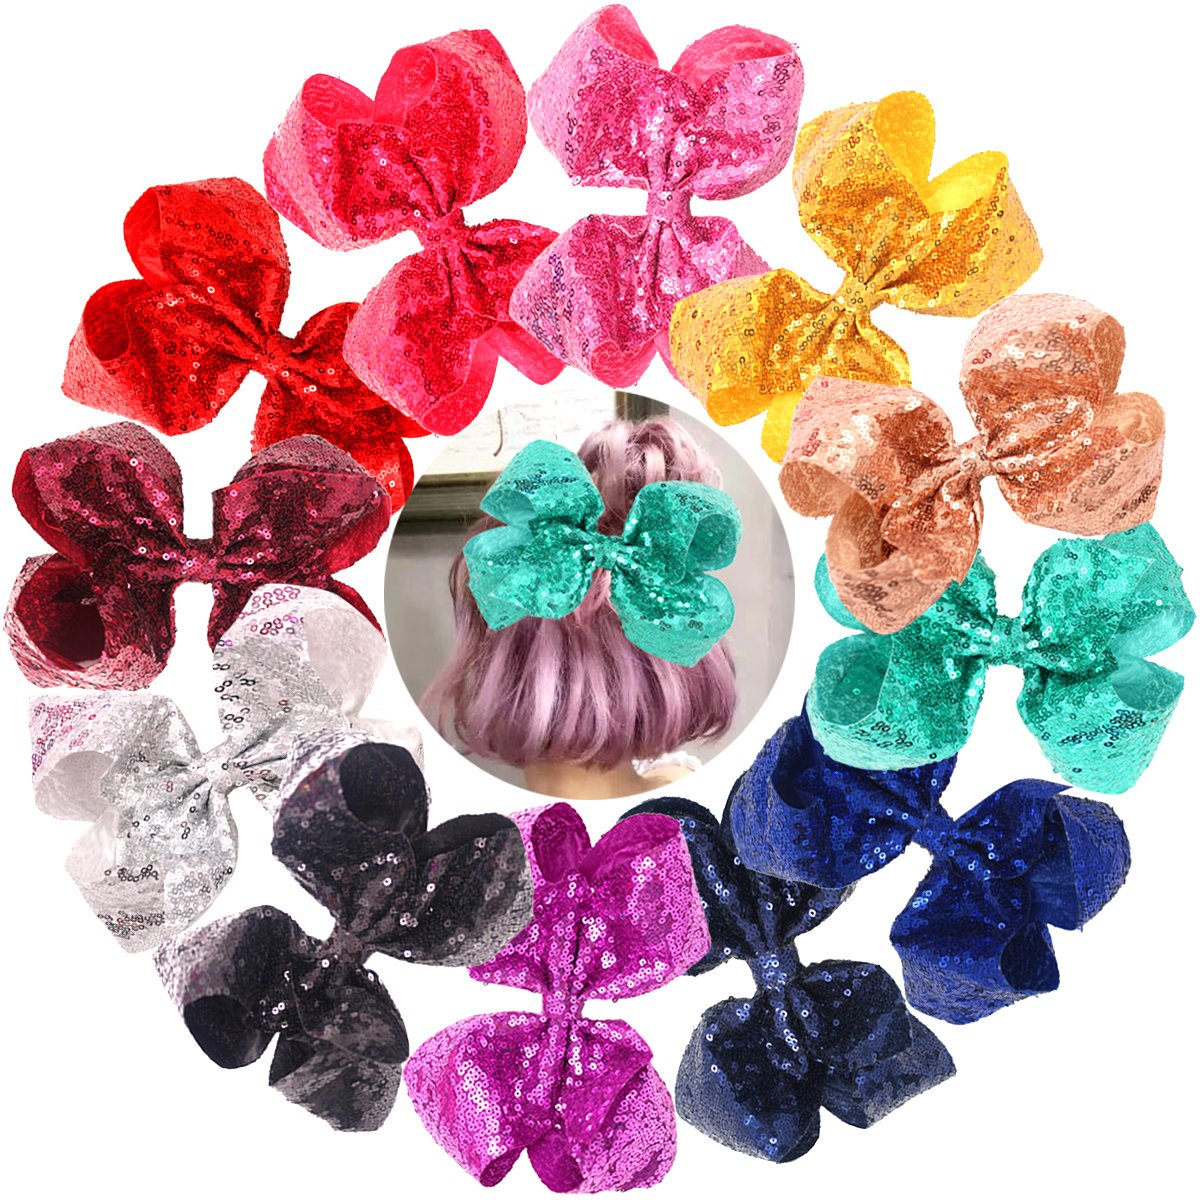 2021 new Bling Limited time cheap sale 8 Inch Big Sequins Hair Alligator Tod Clips Girls for Bows